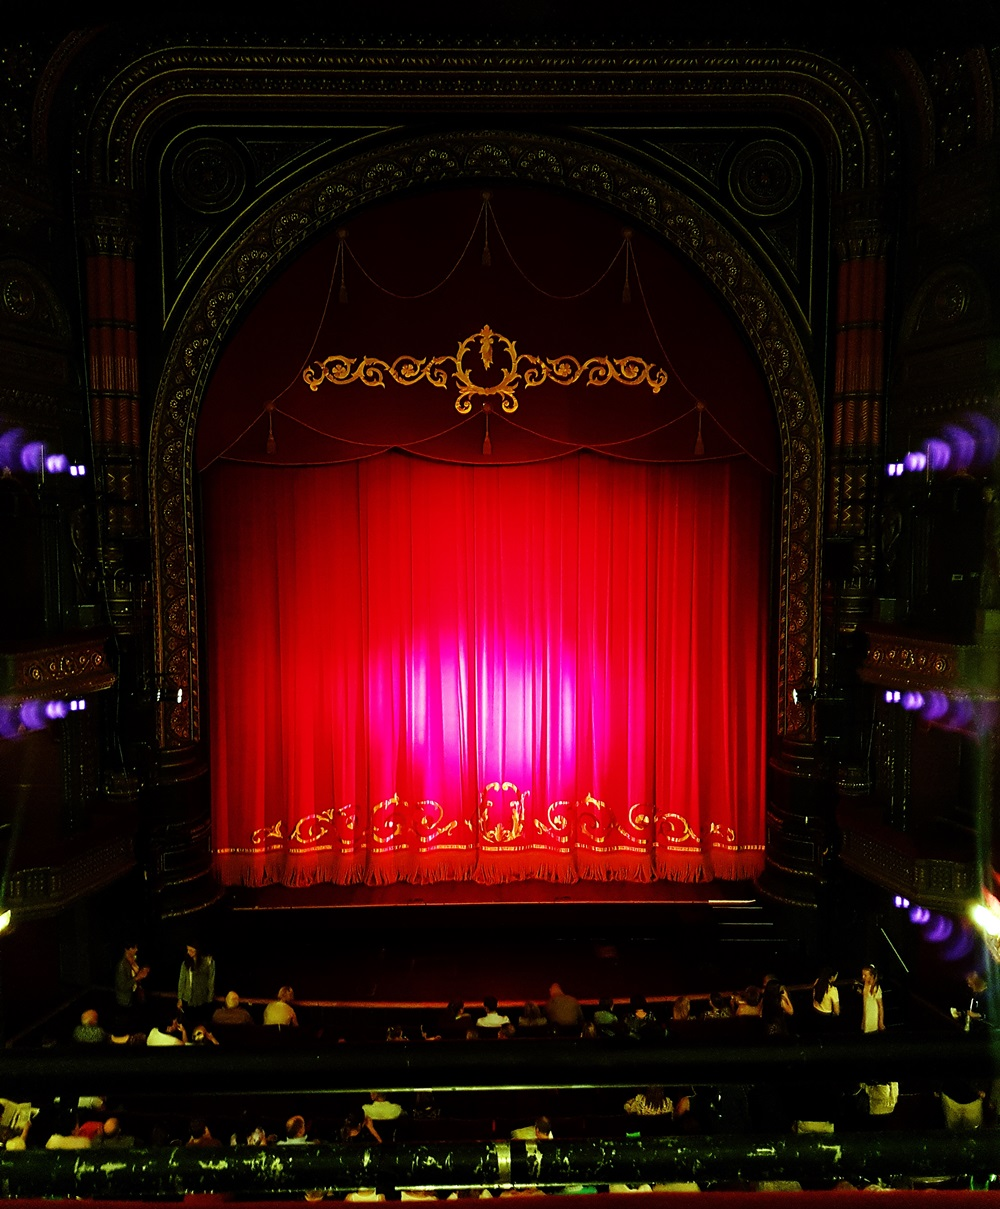 Stage curtain at The Grand Theatre Leeds